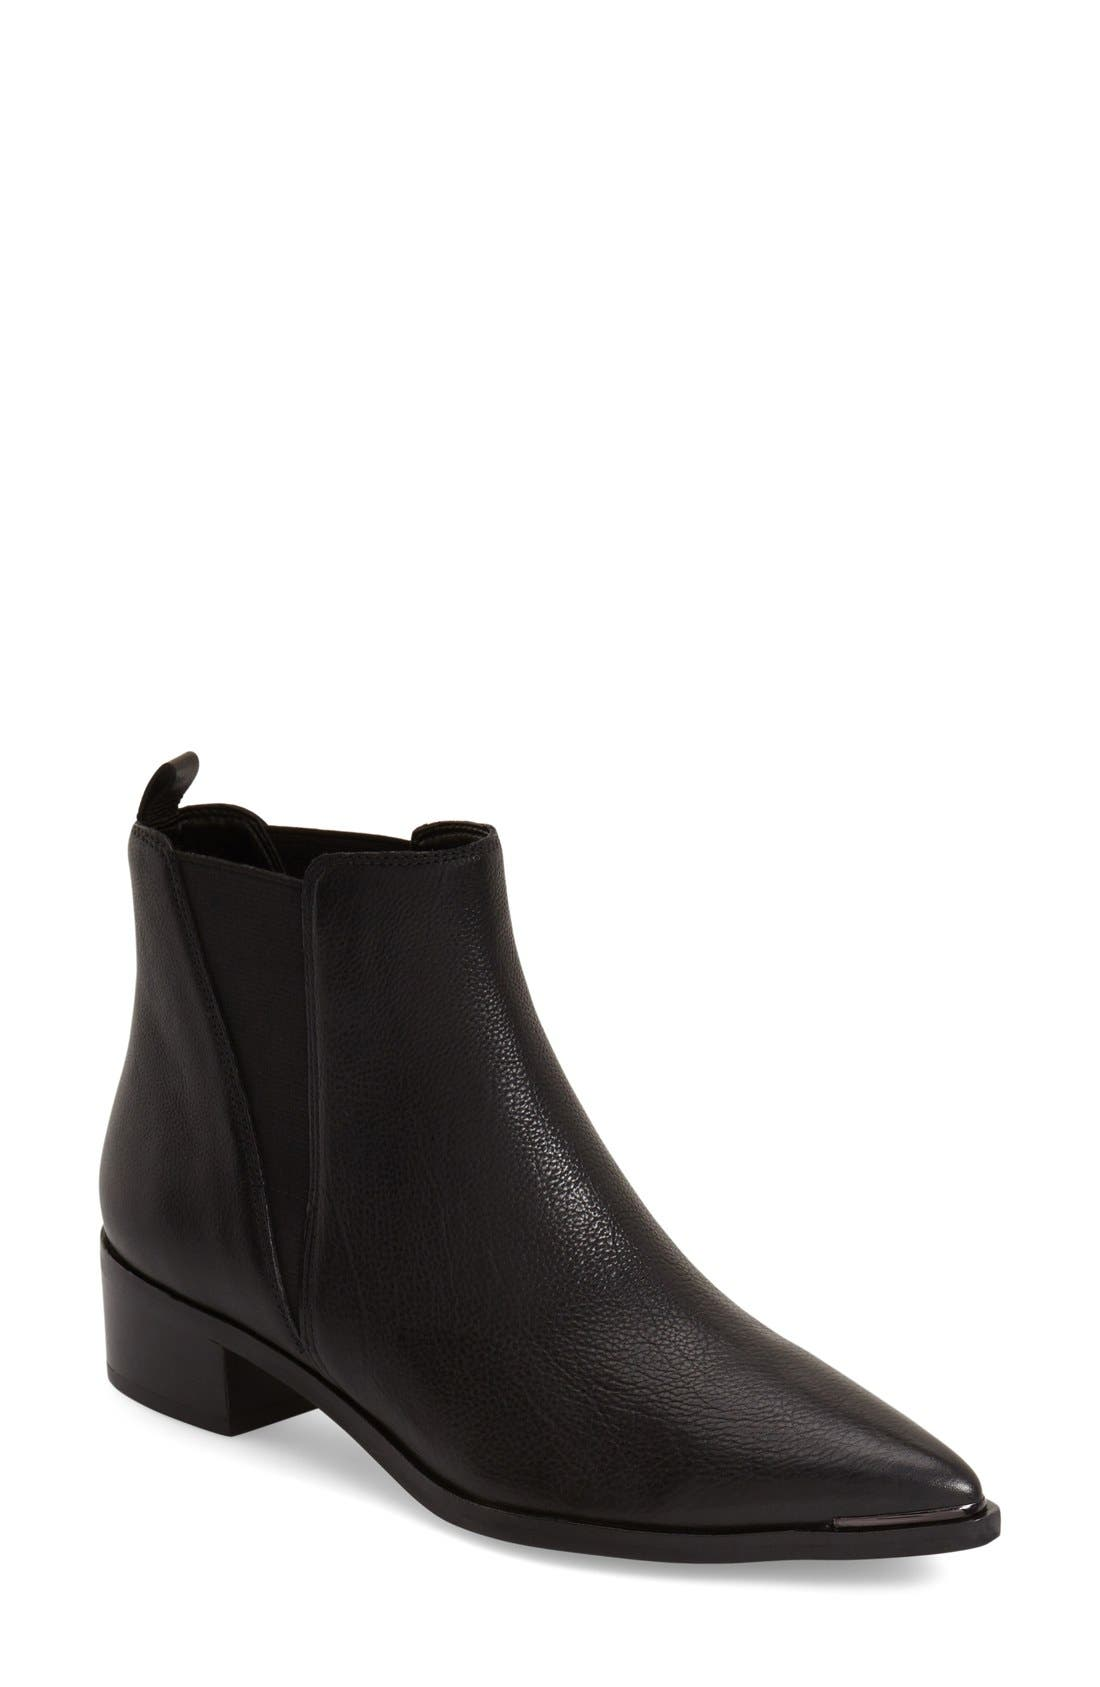 Main Image - Marc Fisher LTD 'Yale' Chelsea Boot (Women)